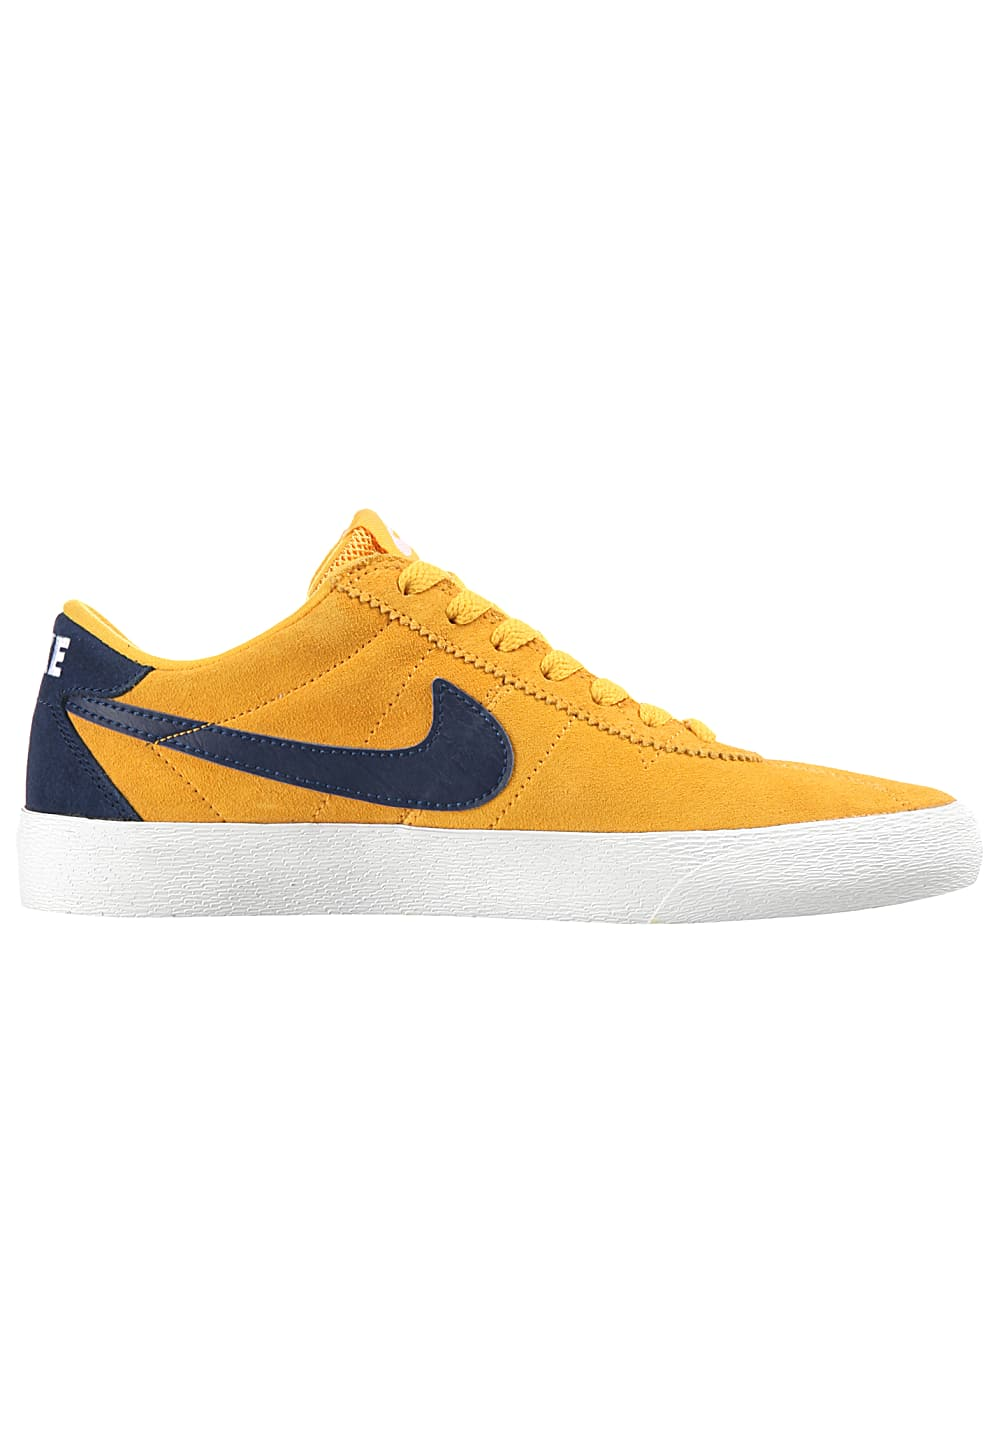 promo code 5ac56 49734 Next. -10%. This product is currently out of stock. NIKE SB. Bruin Low -  Sneakers for Women